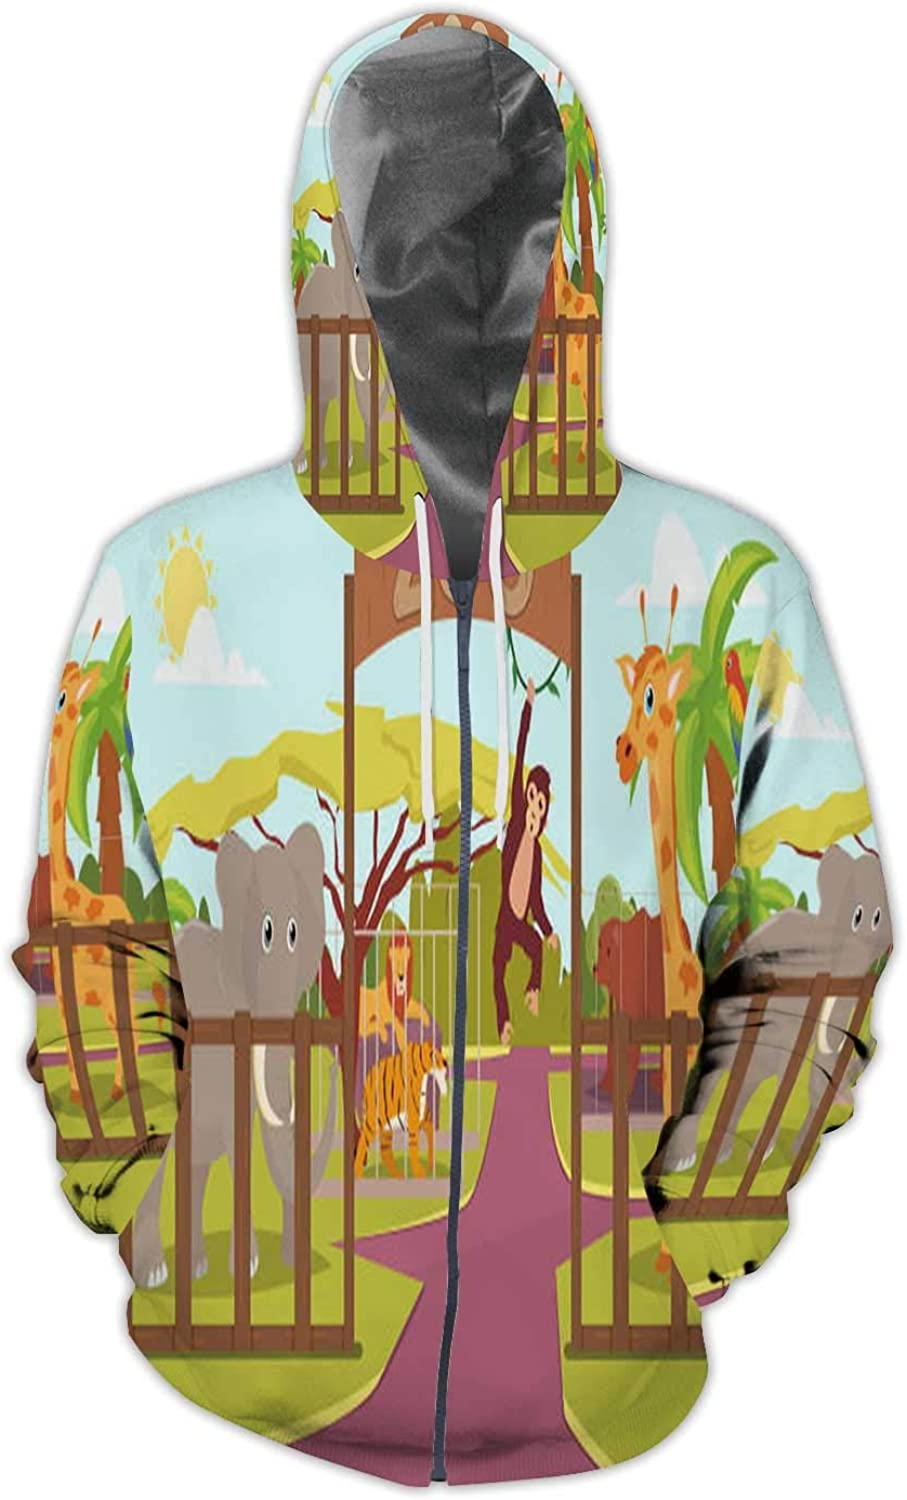 Abstract Scientific Background Glowing Planet Earth in Space,Mens Print 3D Fashion Hoodies Sweatshirts Solar Colorful S